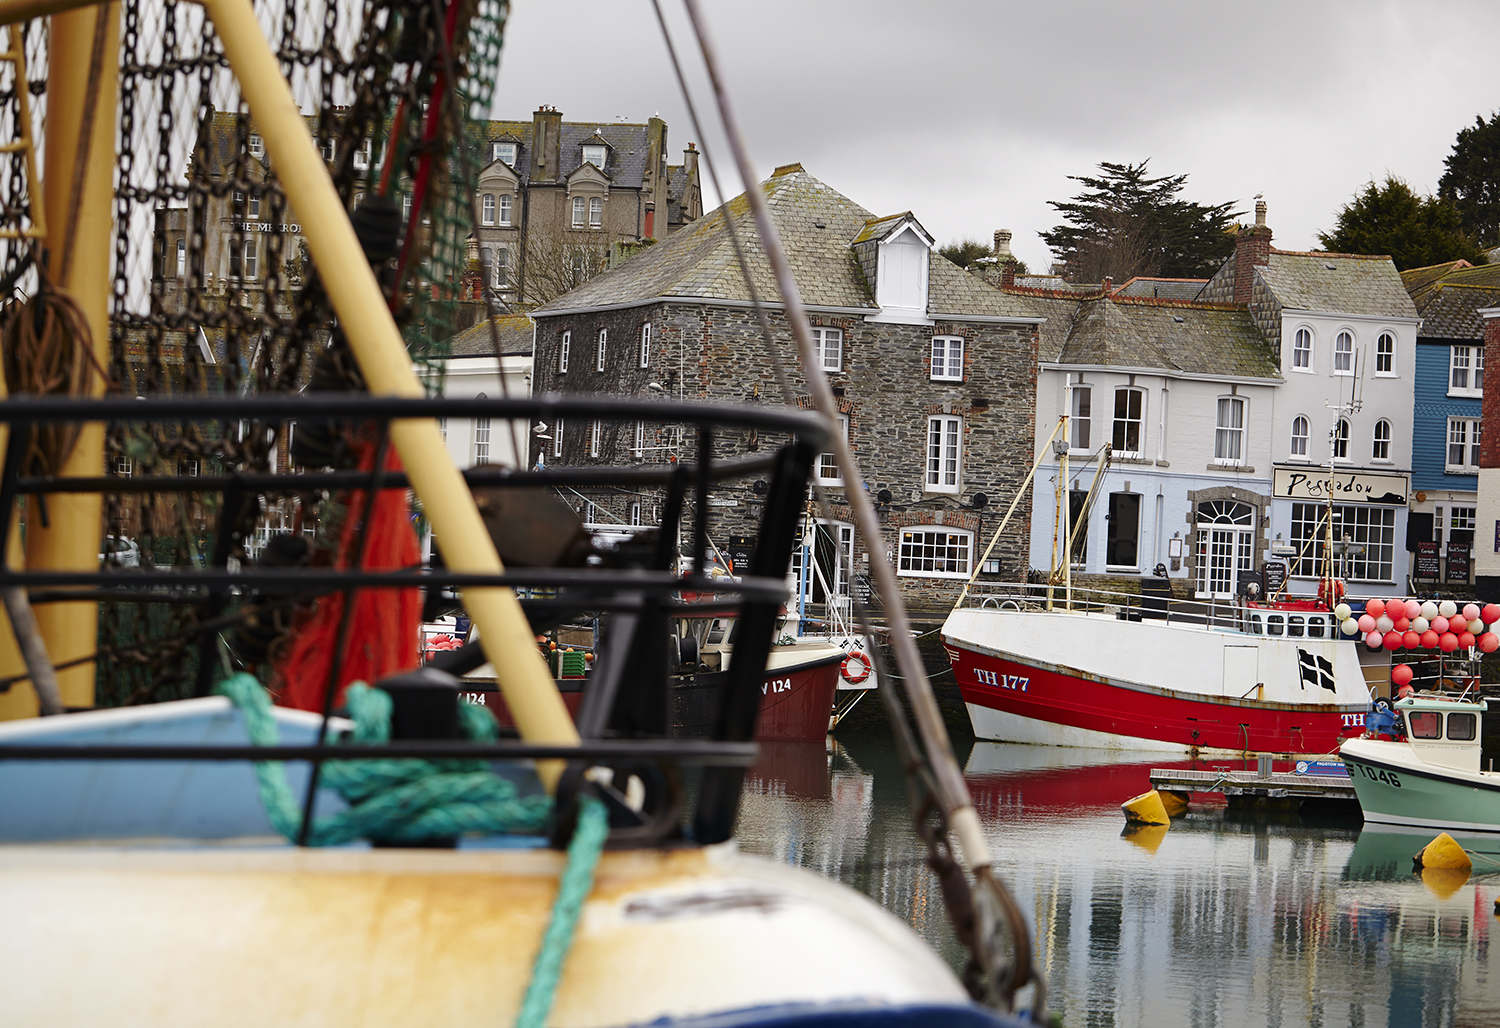 Rick Stein & The Seafood Restaurant 40th Anniversary feature in Delicious magazine - photography, Padstow